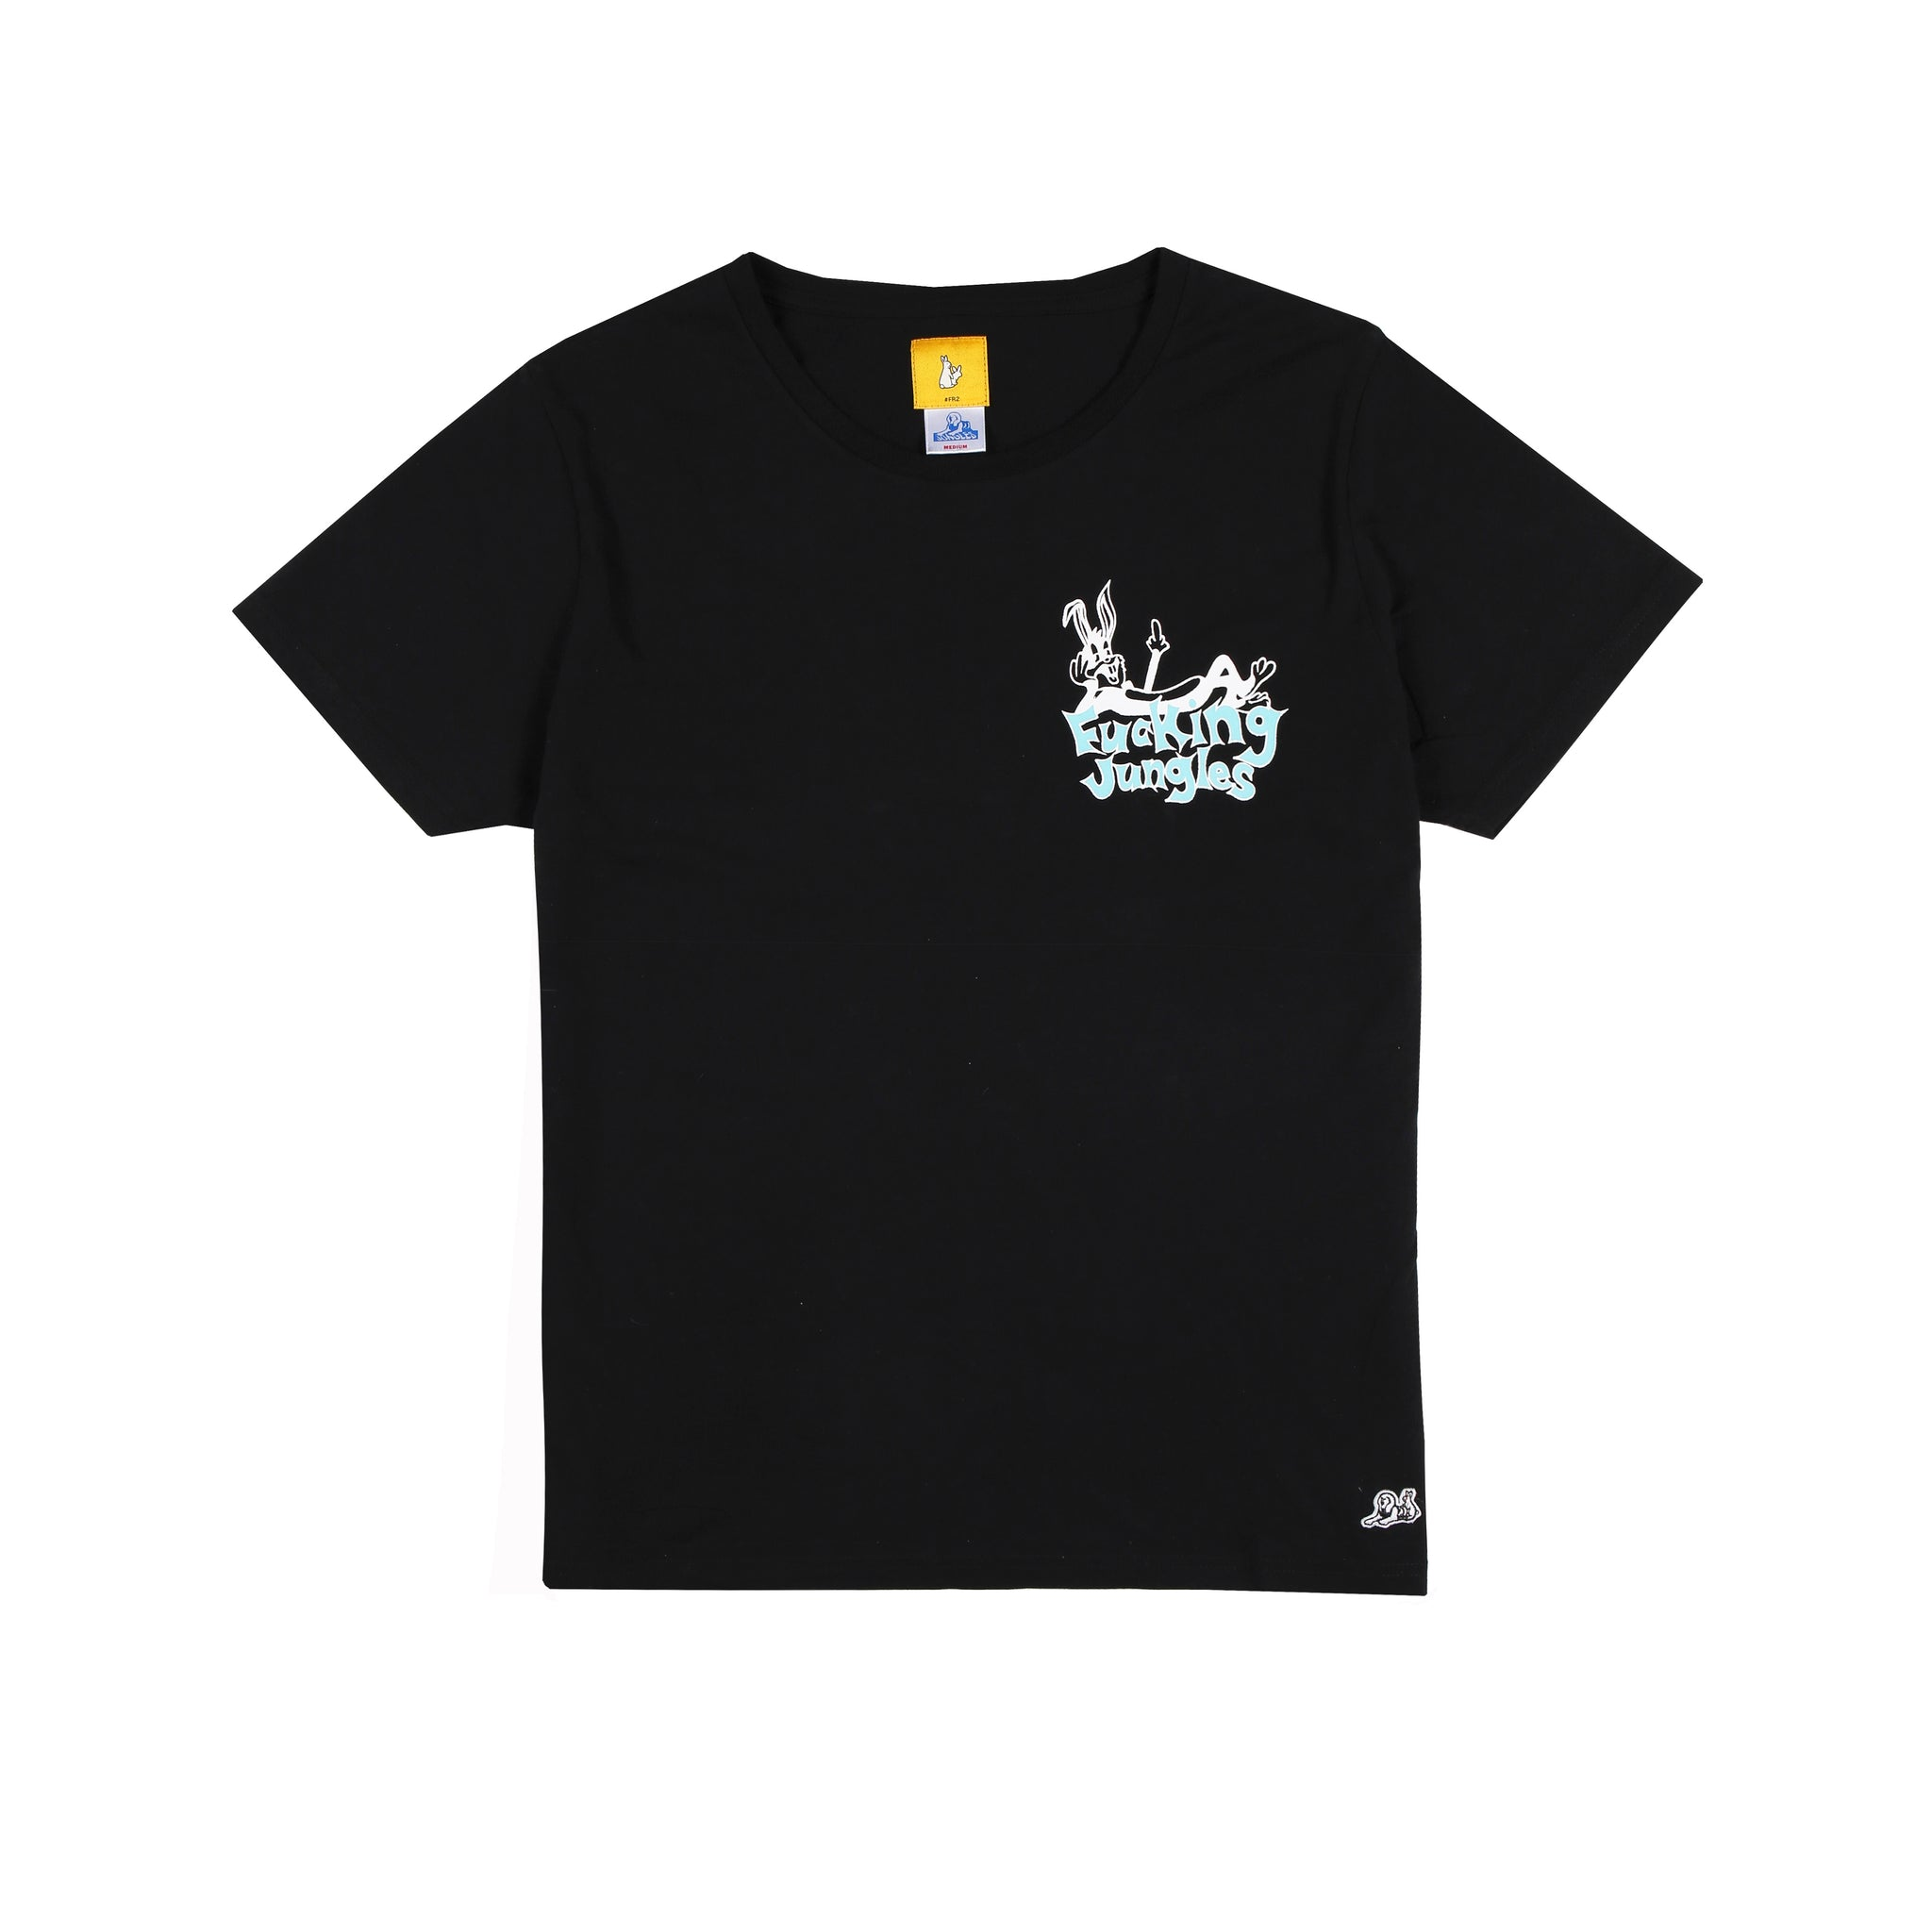 Jungles/Fxxking Rabbits - Safe Sex SS tee black